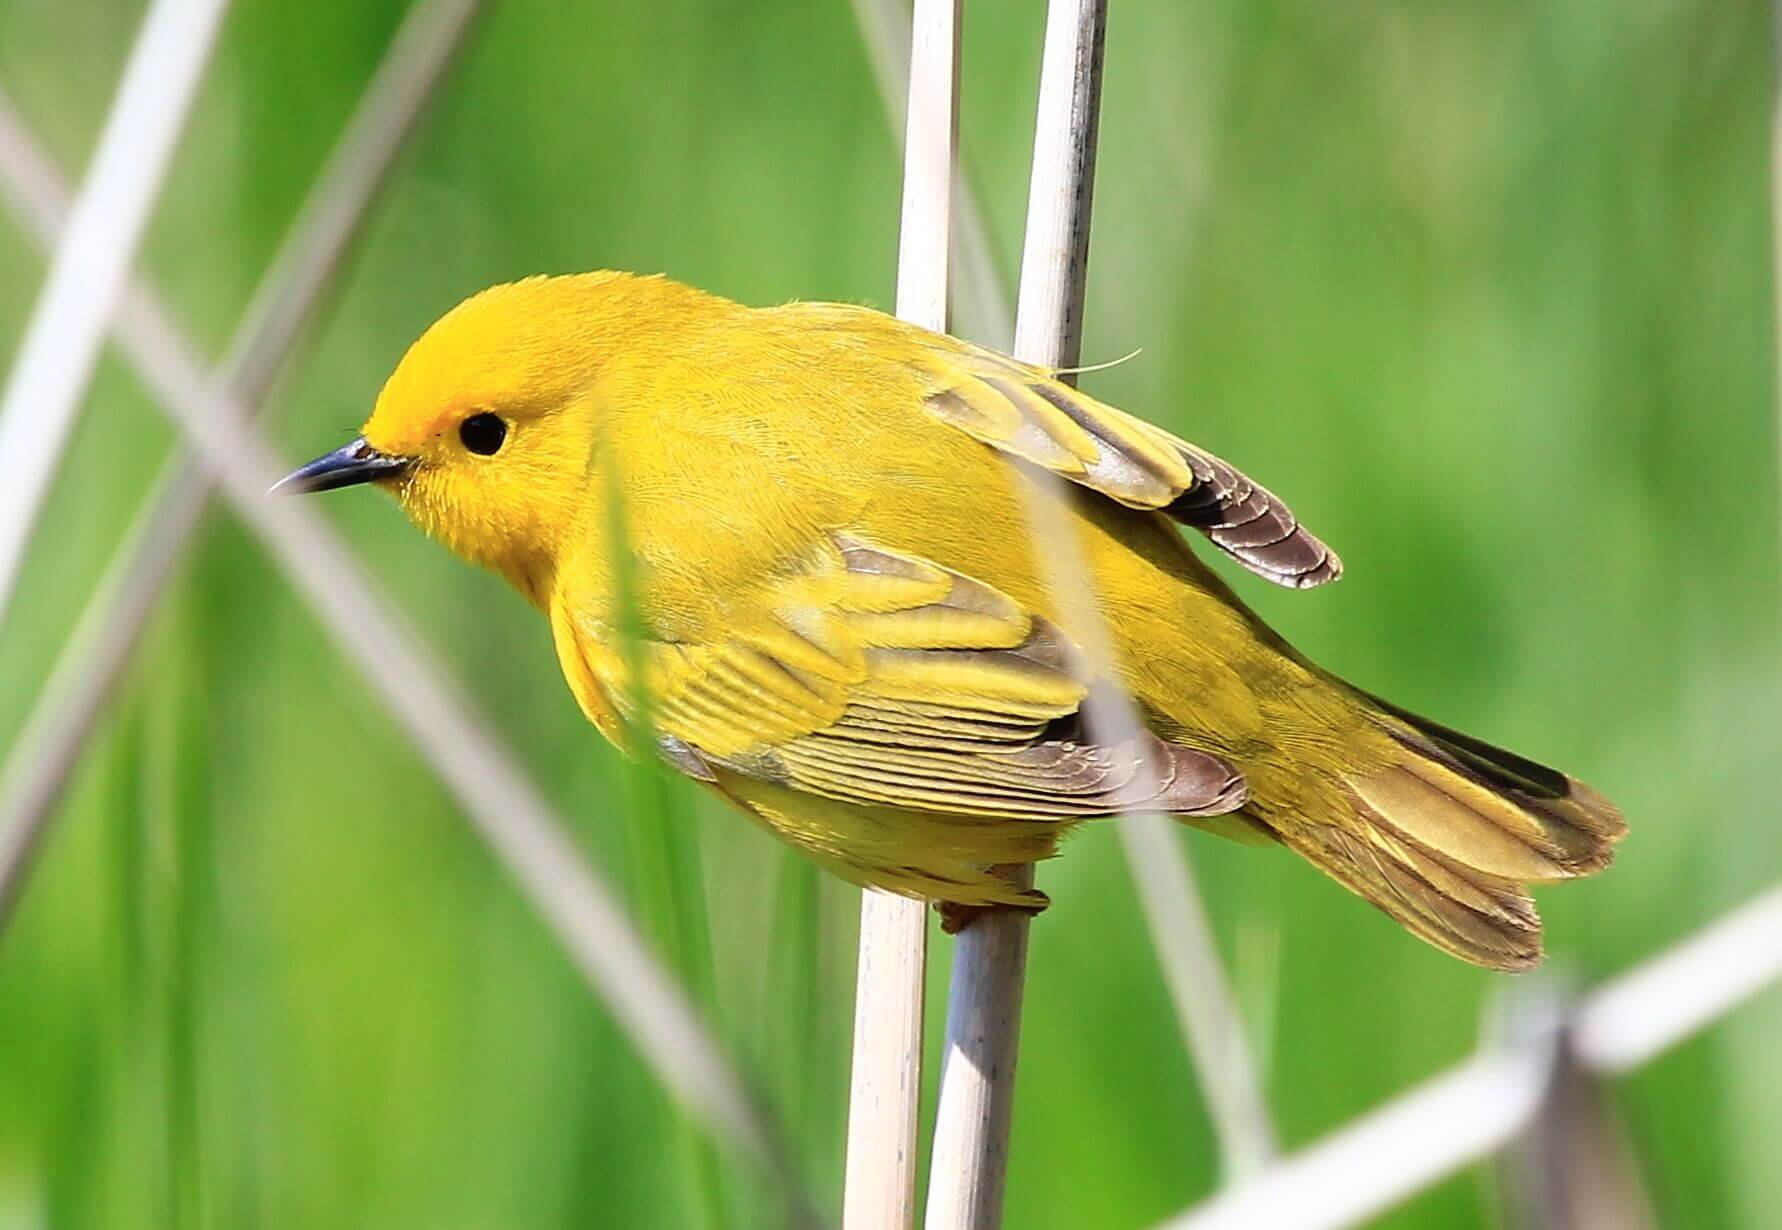 Yellow Bird in Tall Grass